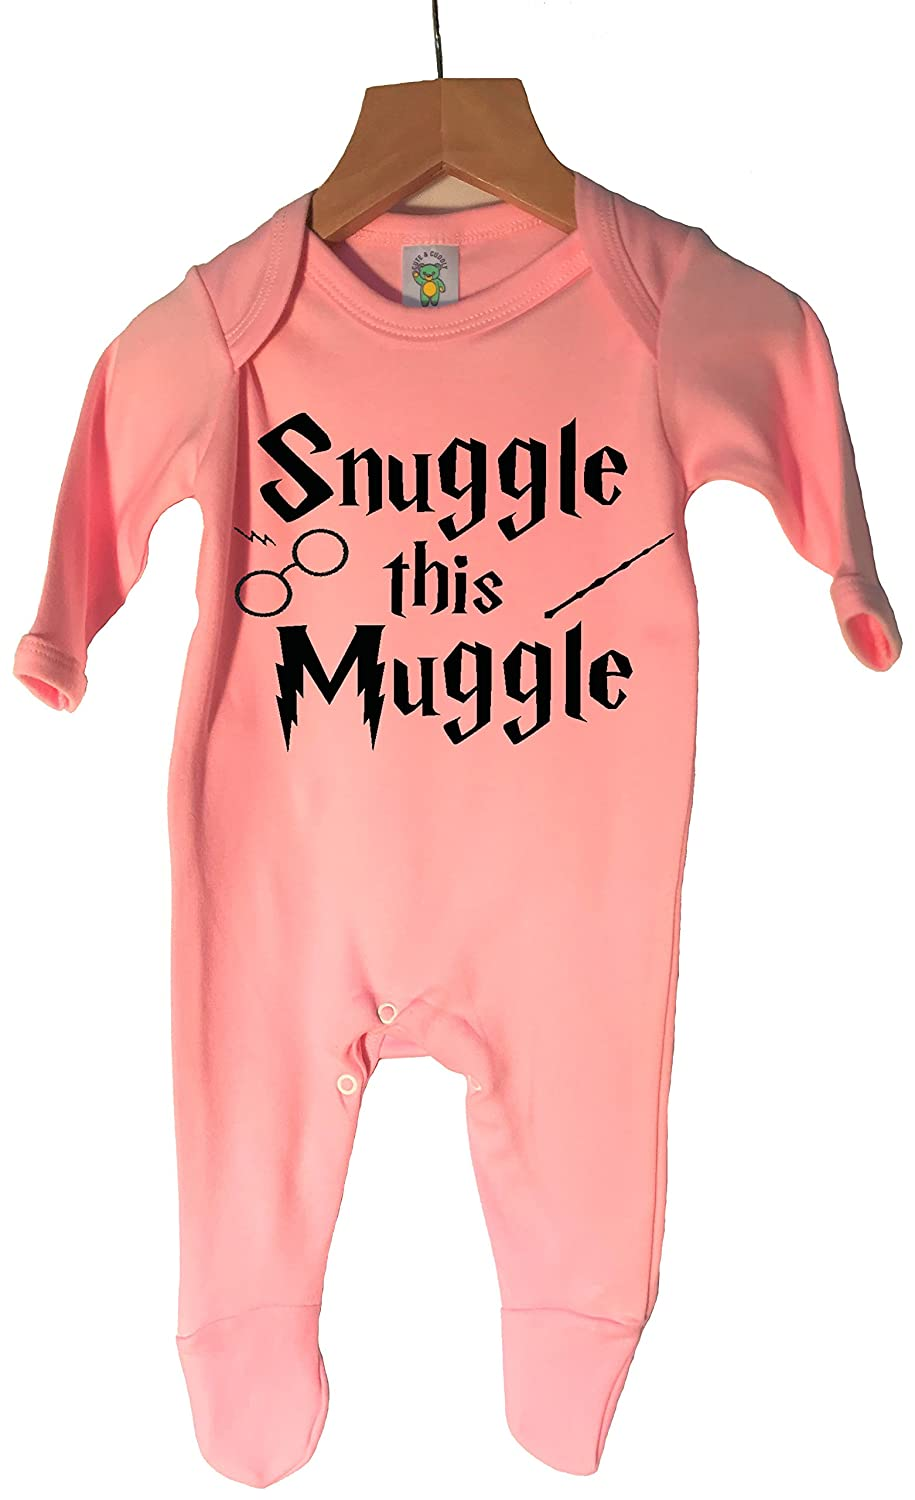 'Snuggle this Muggle' Made in England, 100% cotton sleepsuit in choice of 3 colours and 4 sizes.